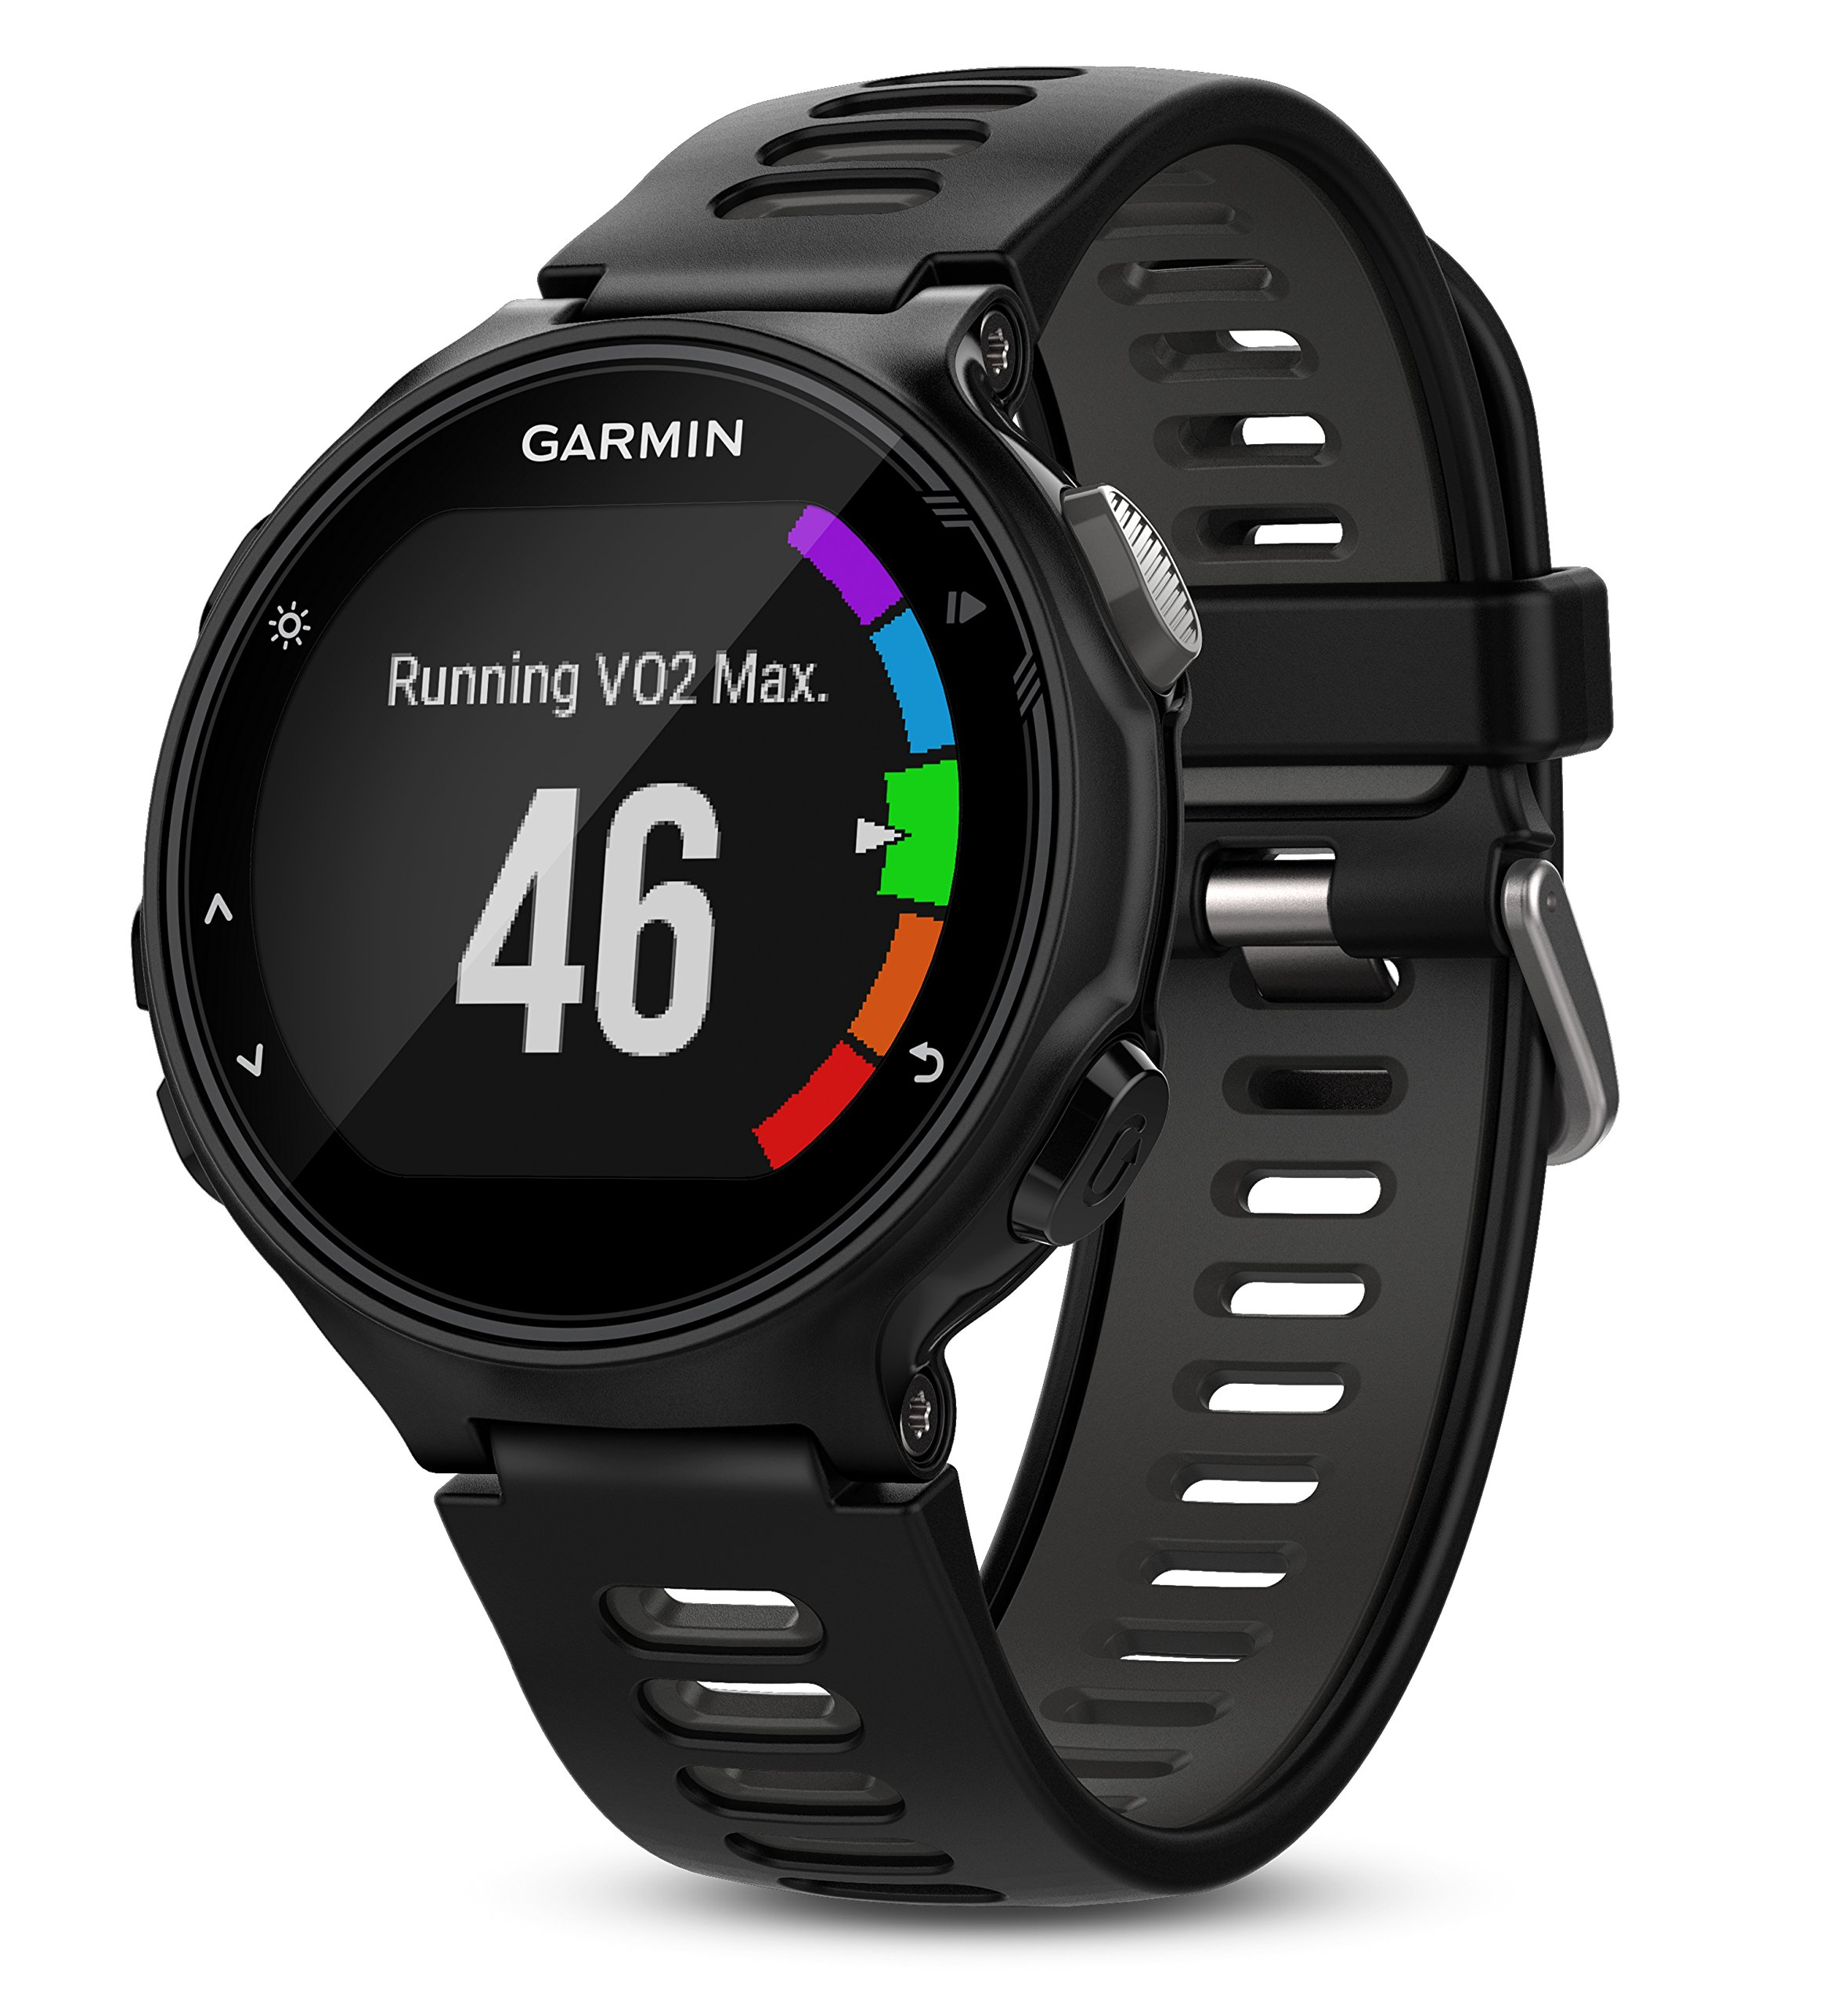 Garmin Forerunner 735XT (Black, Tri-Bundle) Power Bundle | Includes HRM Tri & HRM Swim Chest Straps, HD Glass Screen Protectors (x2) & PlayBetter Portable Charger | Multisport GPS Running Watch by PlayBetter (Image #5)